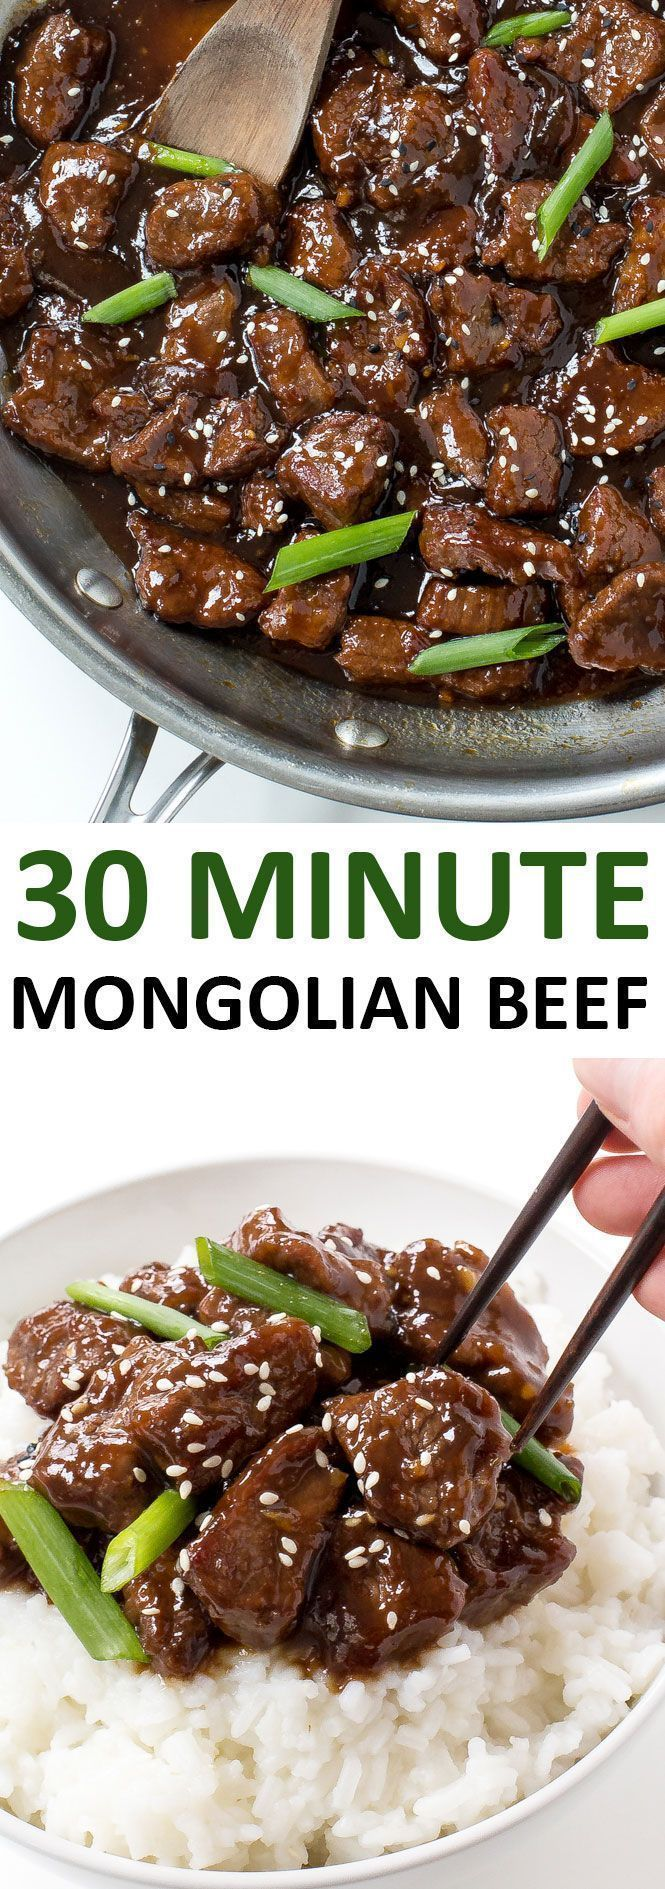 Amazing 30 Minute Mongolian Beef. Tender flank steak fried and tossed in a thick Asian inspired sauce.